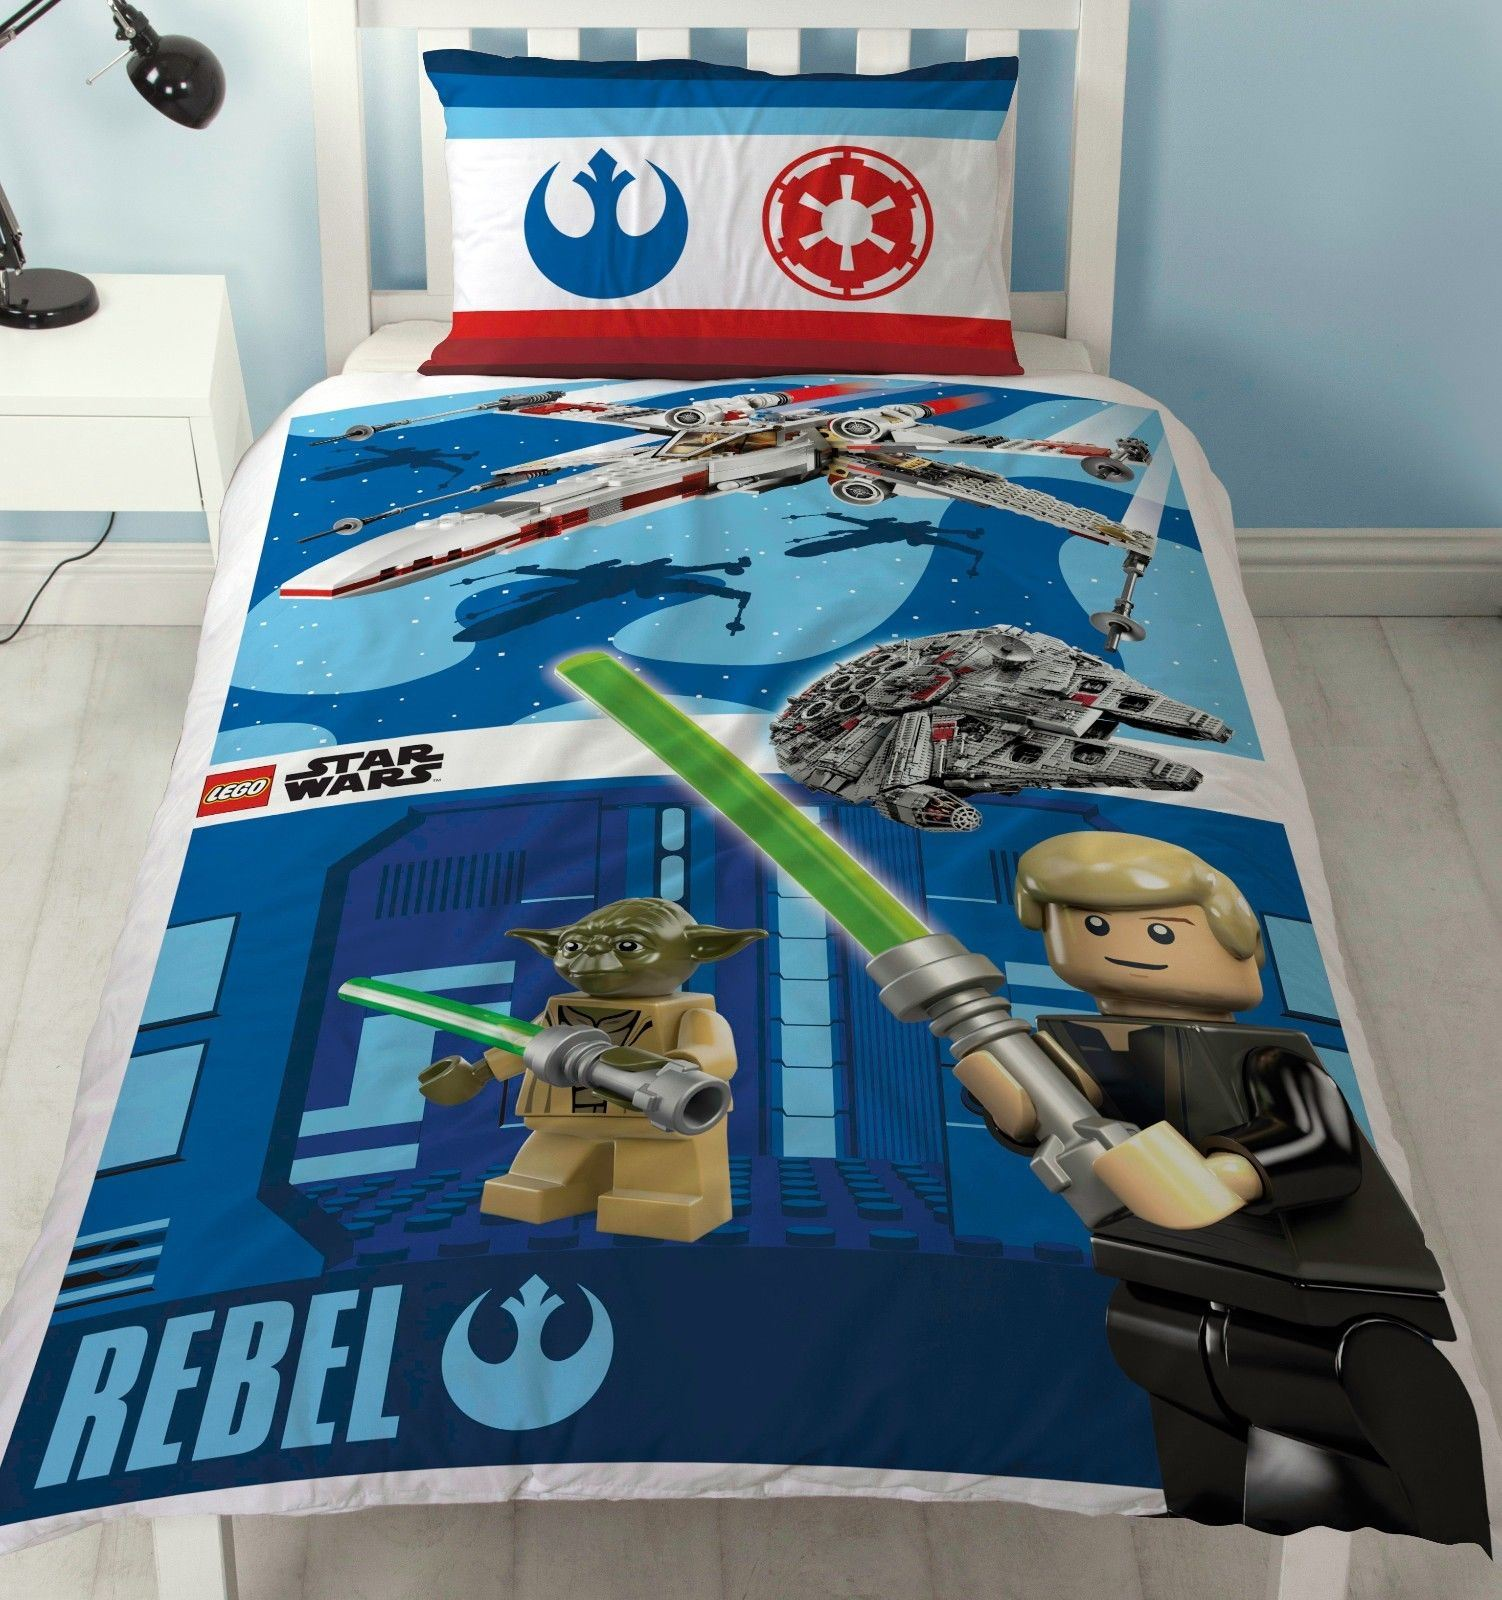 Official-Star-Wars-Licensed-Duvet-Covers-Single-Double-Jedi-Darth-Vader-Lego thumbnail 3